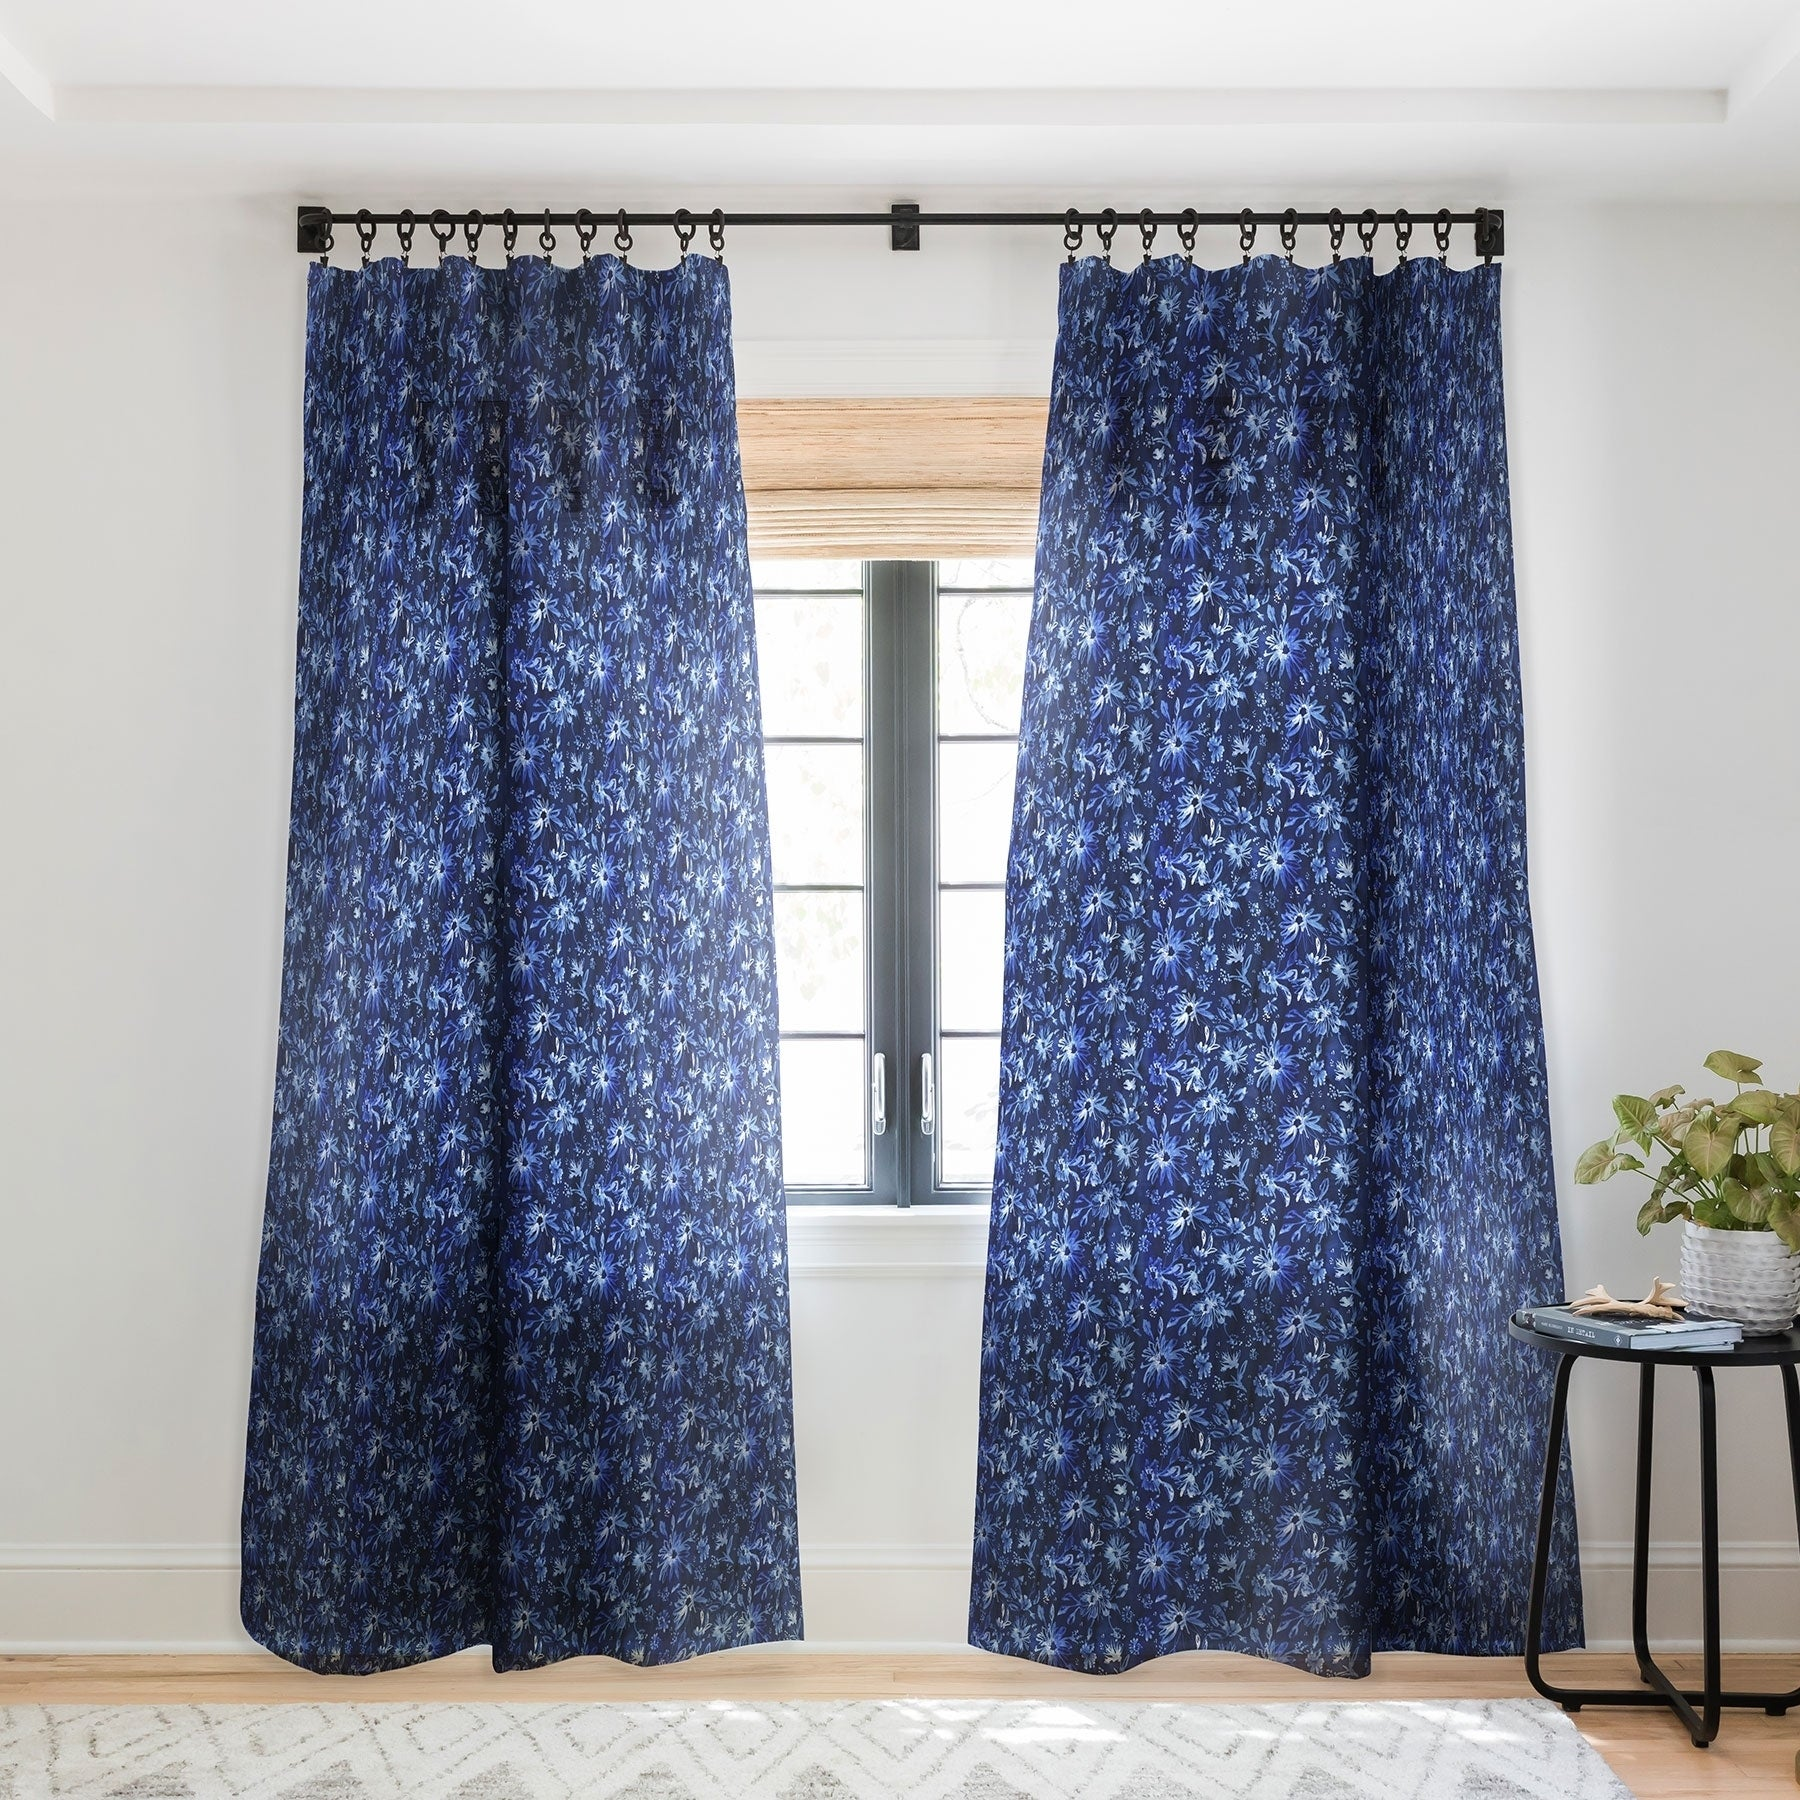 Schatzi Brown Lovely Floral Dark Blue Single Panel Sheer Curtain 50 X 84 On Sale Overstock 22044660